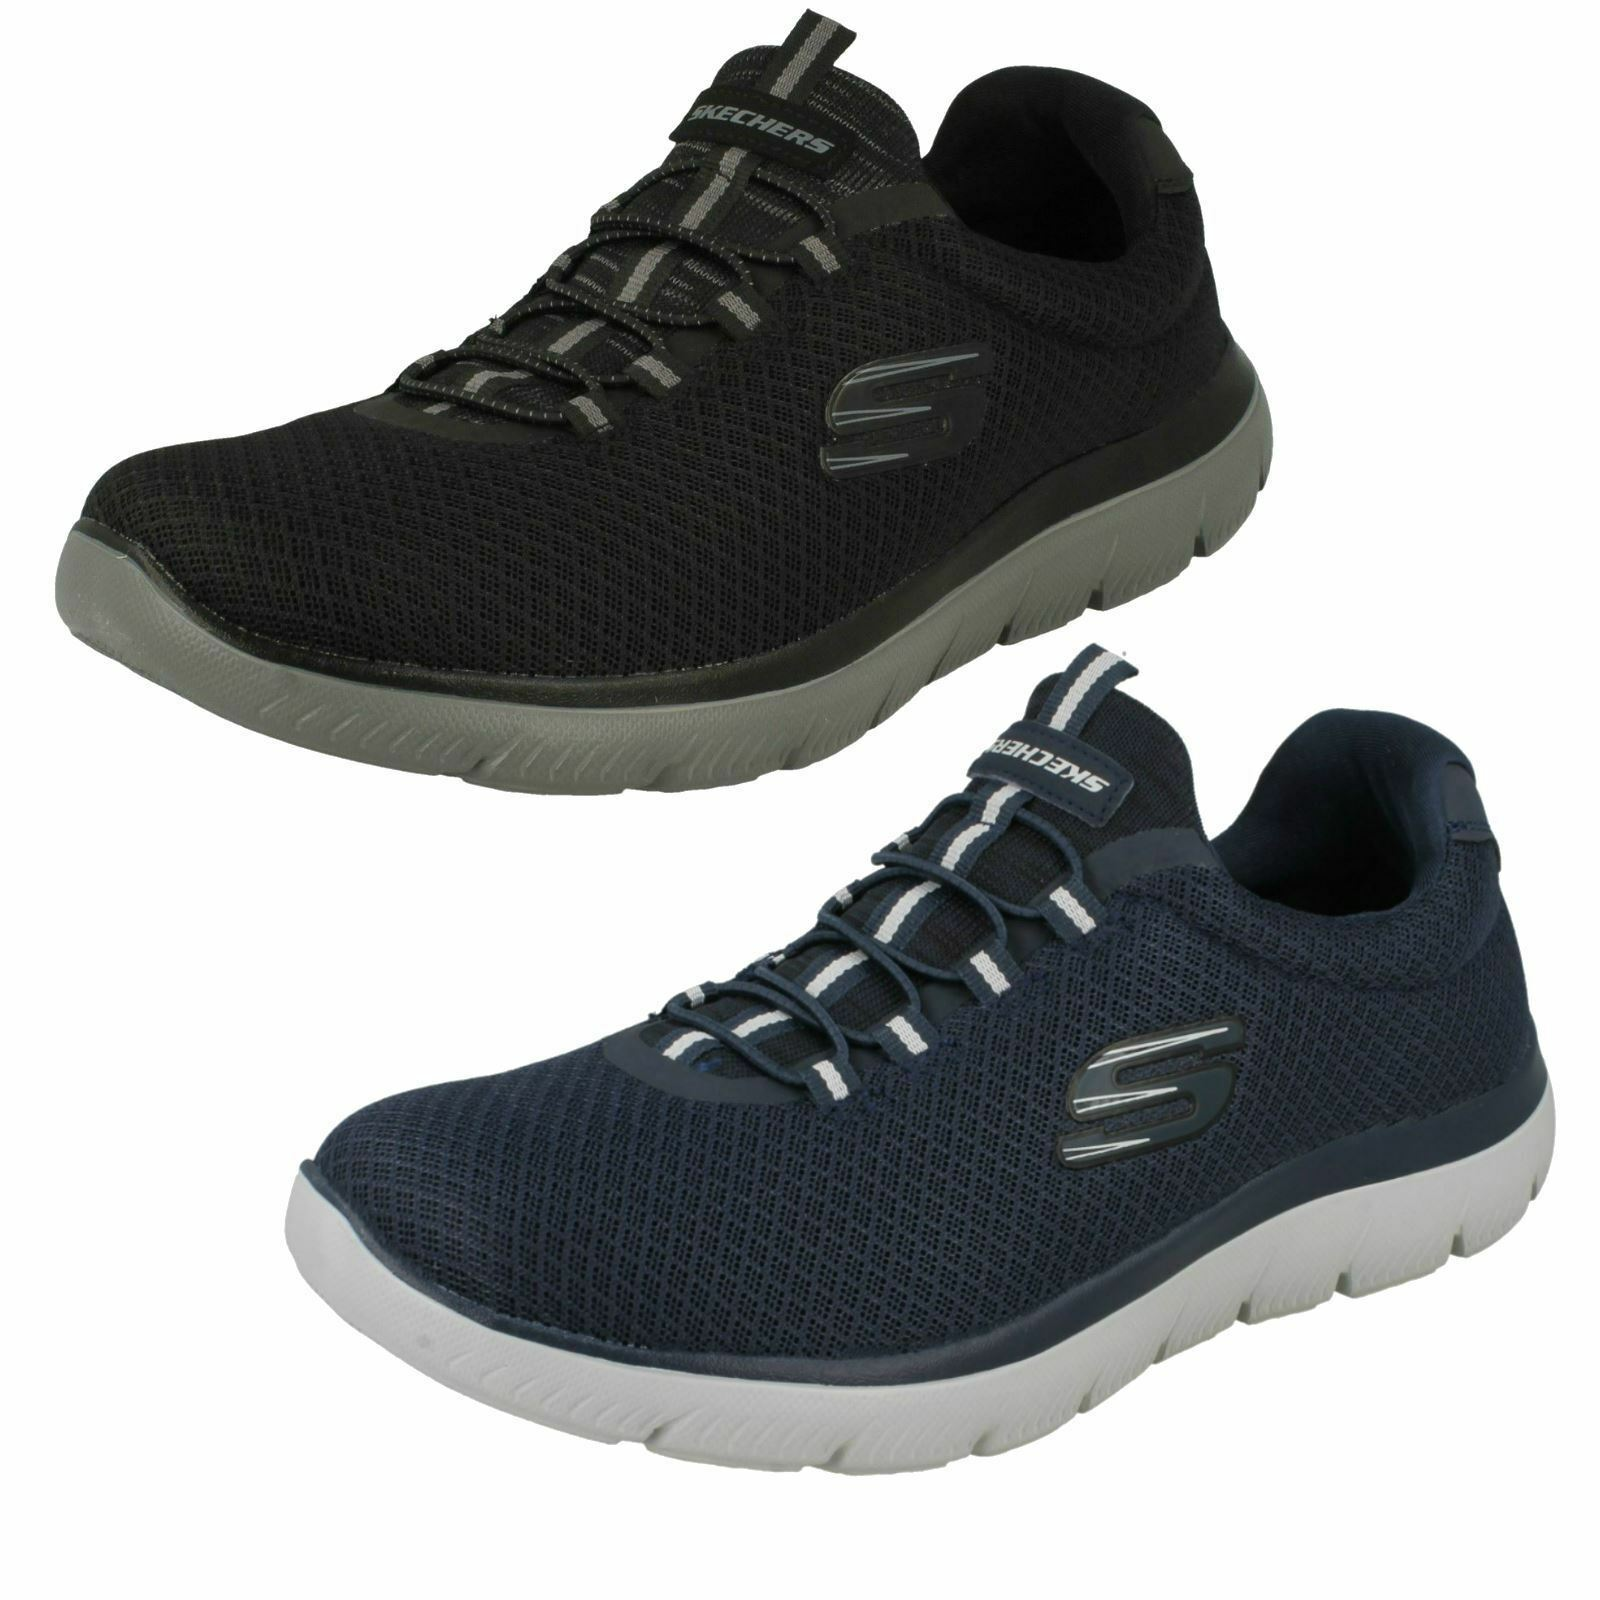 Mens Skechers Casual Trainers Summits - 52811